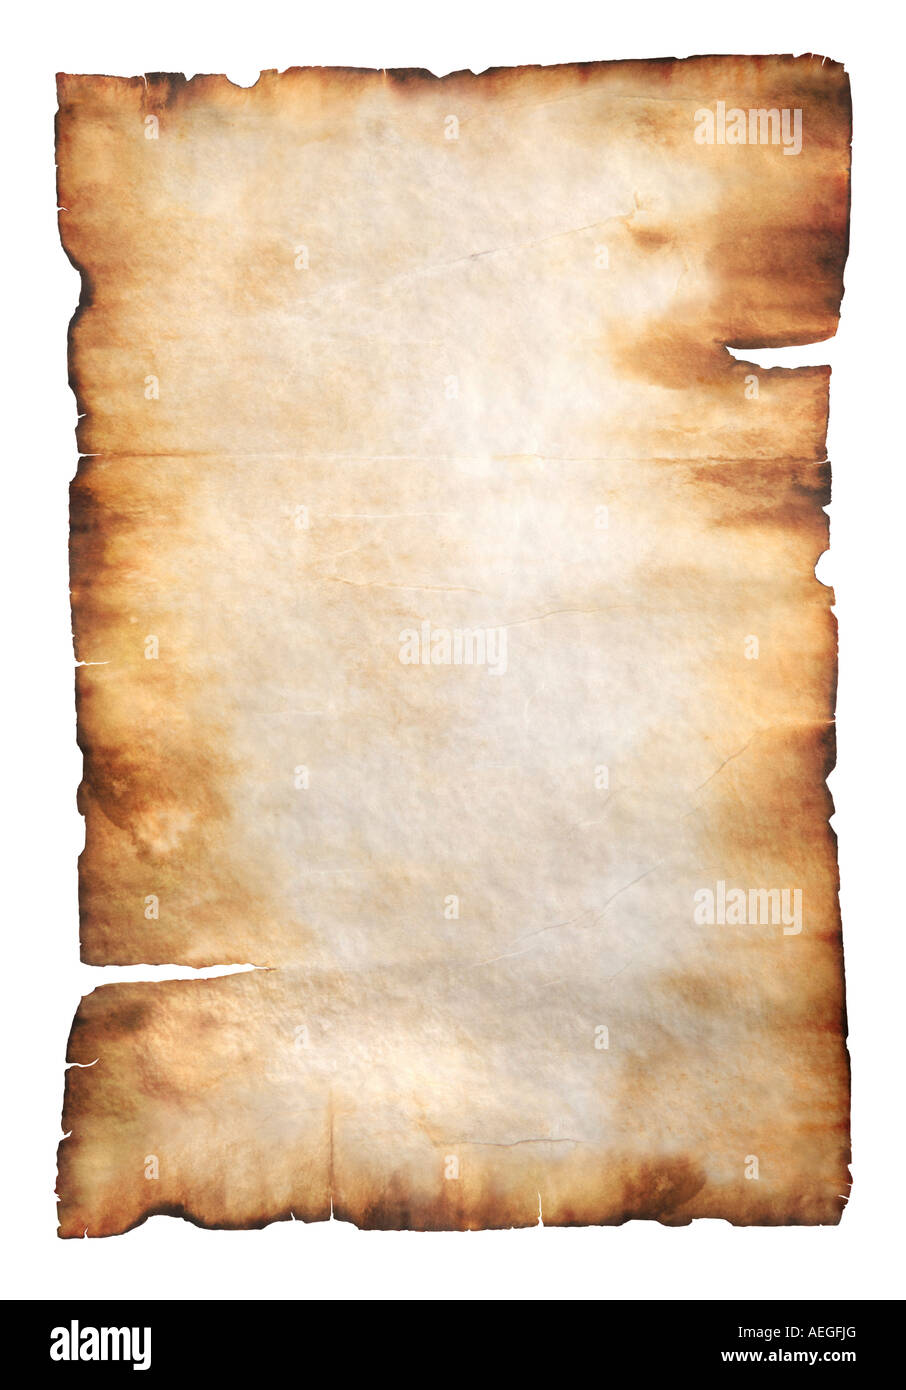 Old parchment - Stock Image